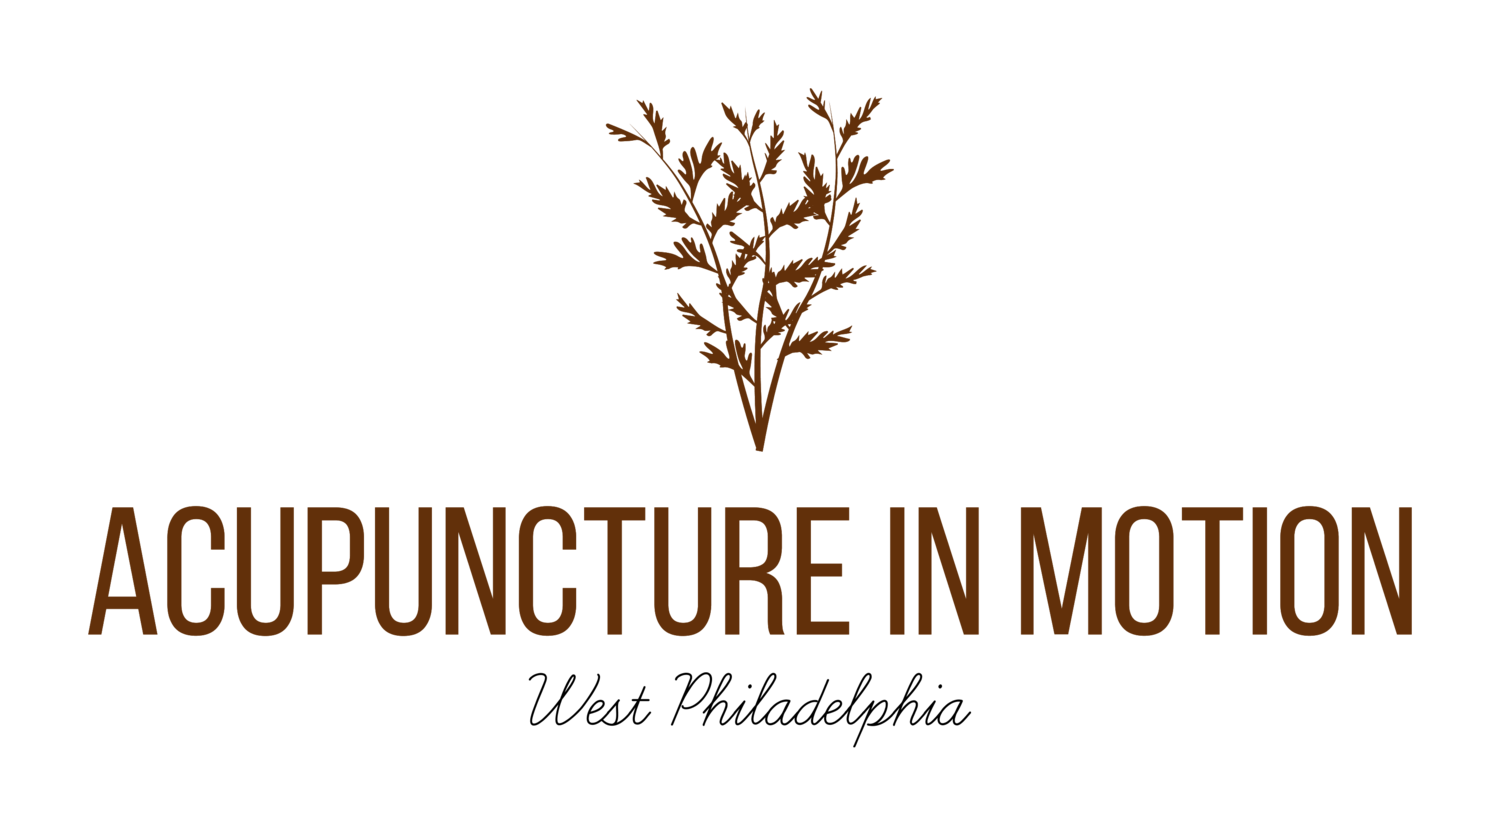 ACUPUNCTURE IN MOTION